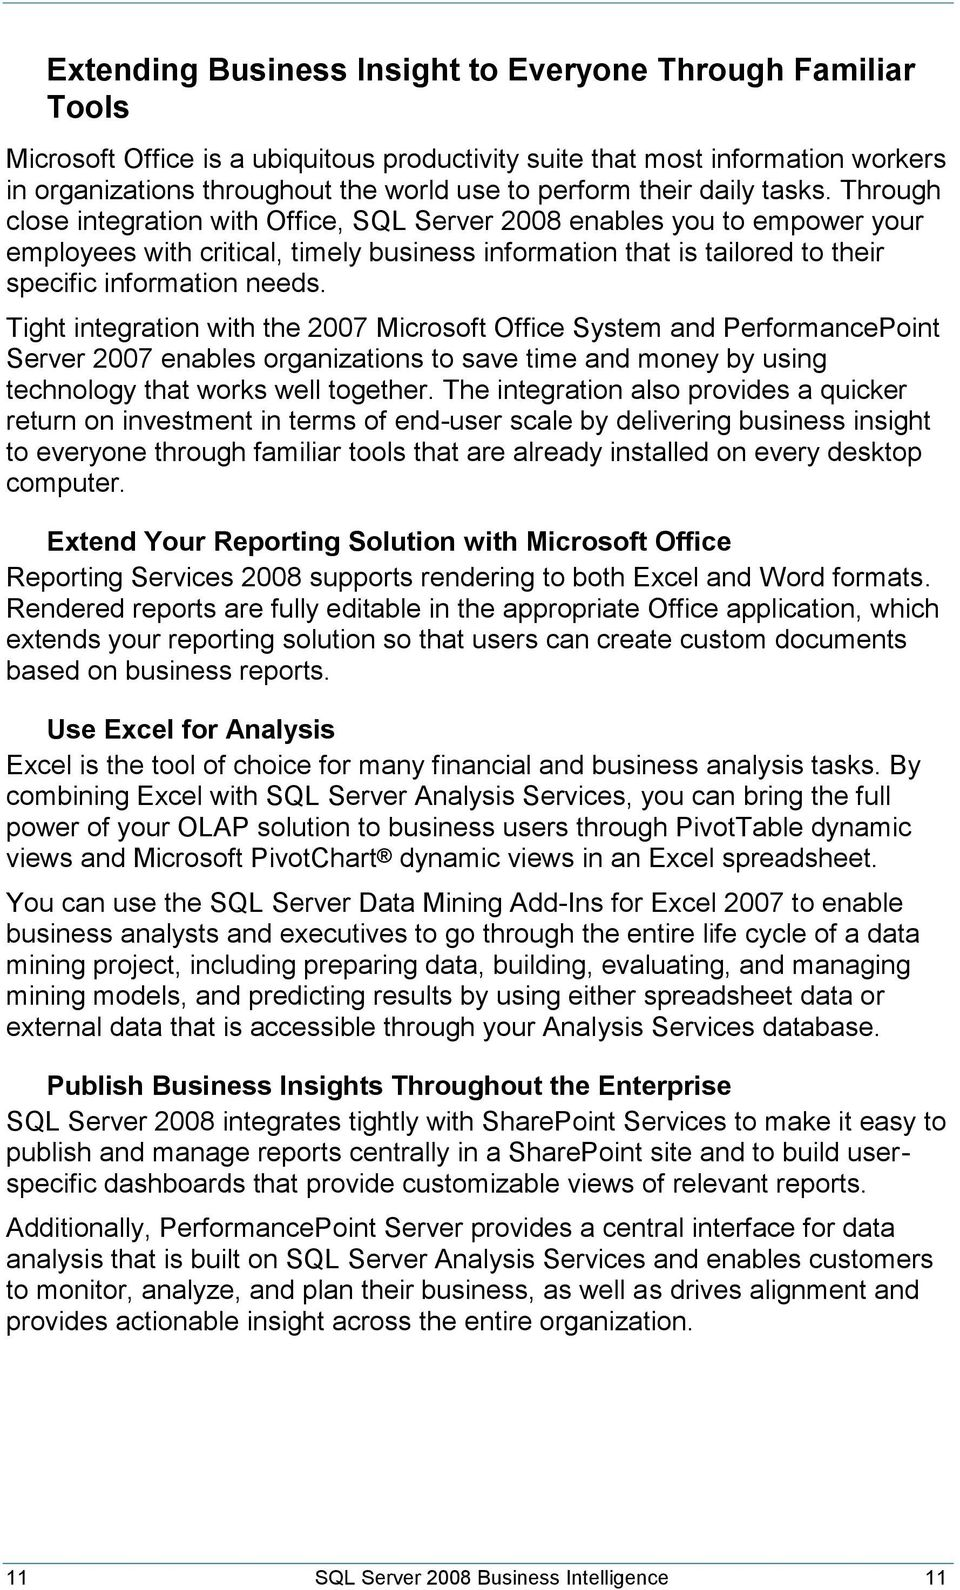 Through close integration with Office, SQL Server 2008 enables you to empower your employees with critical, timely business information that is tailored to their specific information needs.